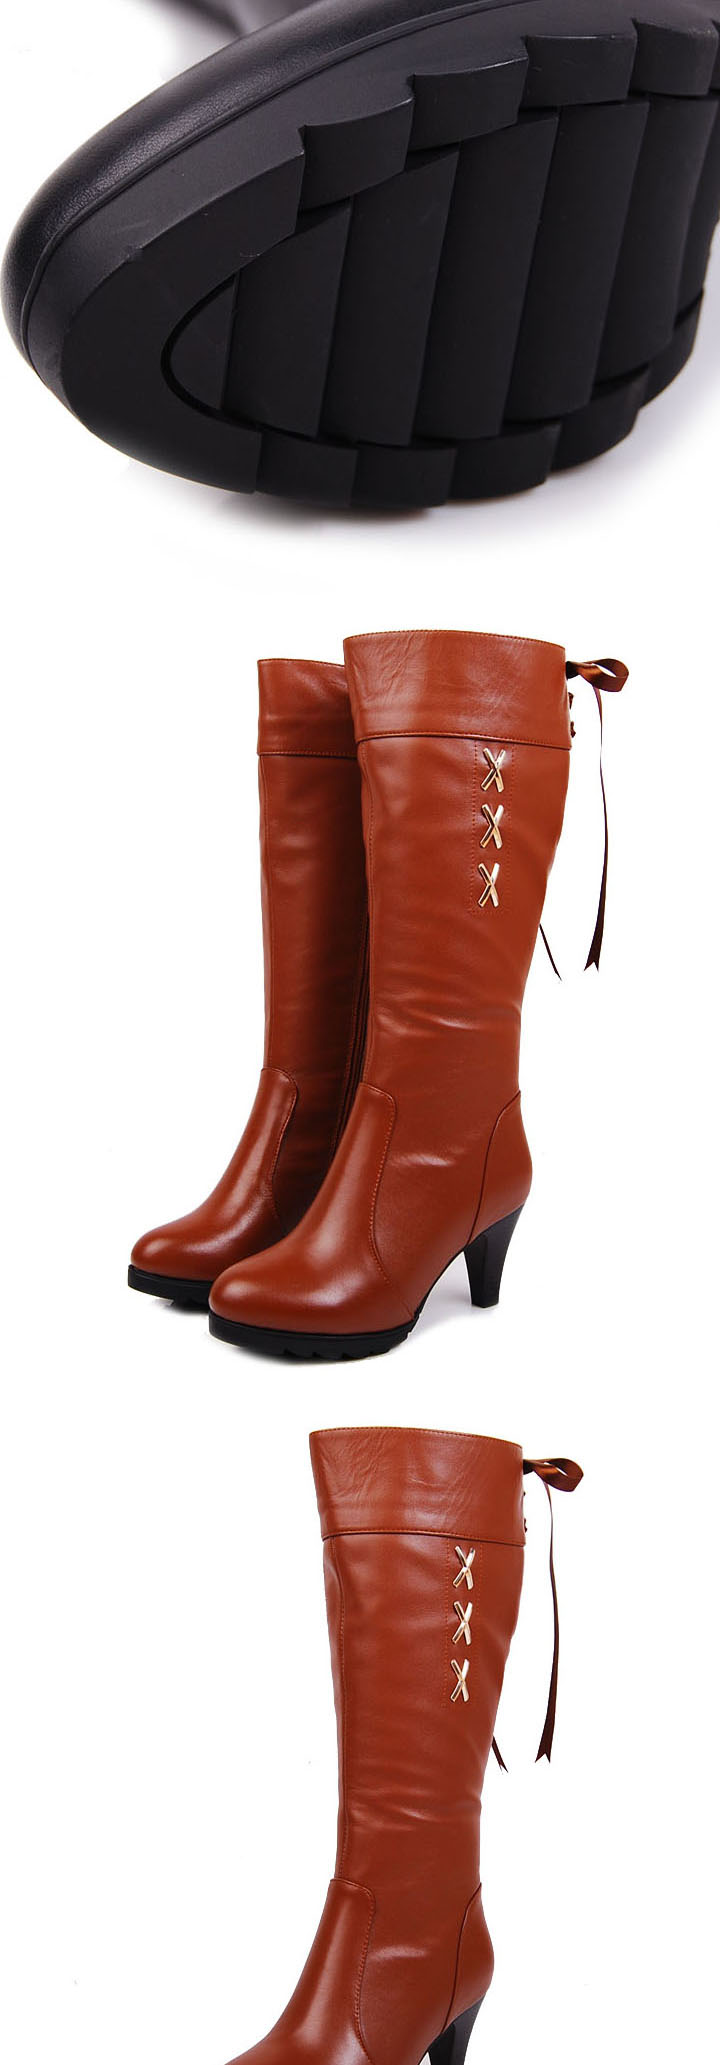 Veegol-HG Christmas special high-grade leather shoes the first layer of Ribbon side zips leather platform high heel boots women's boots